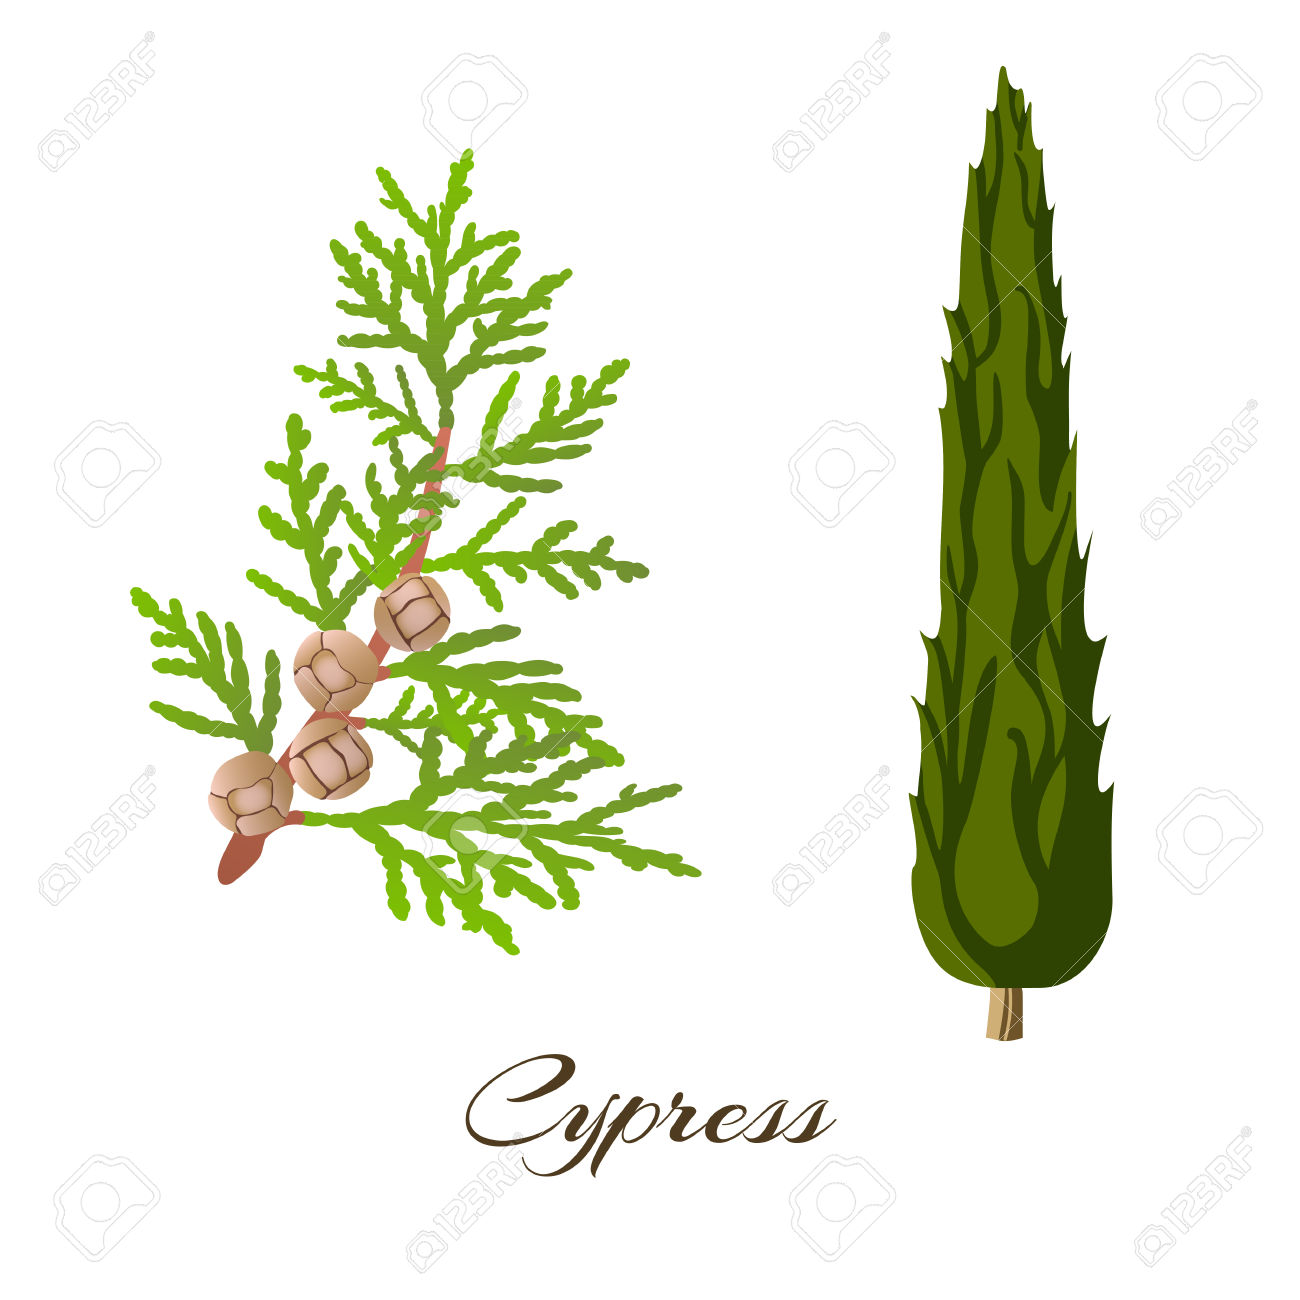 Cypress Clipart.